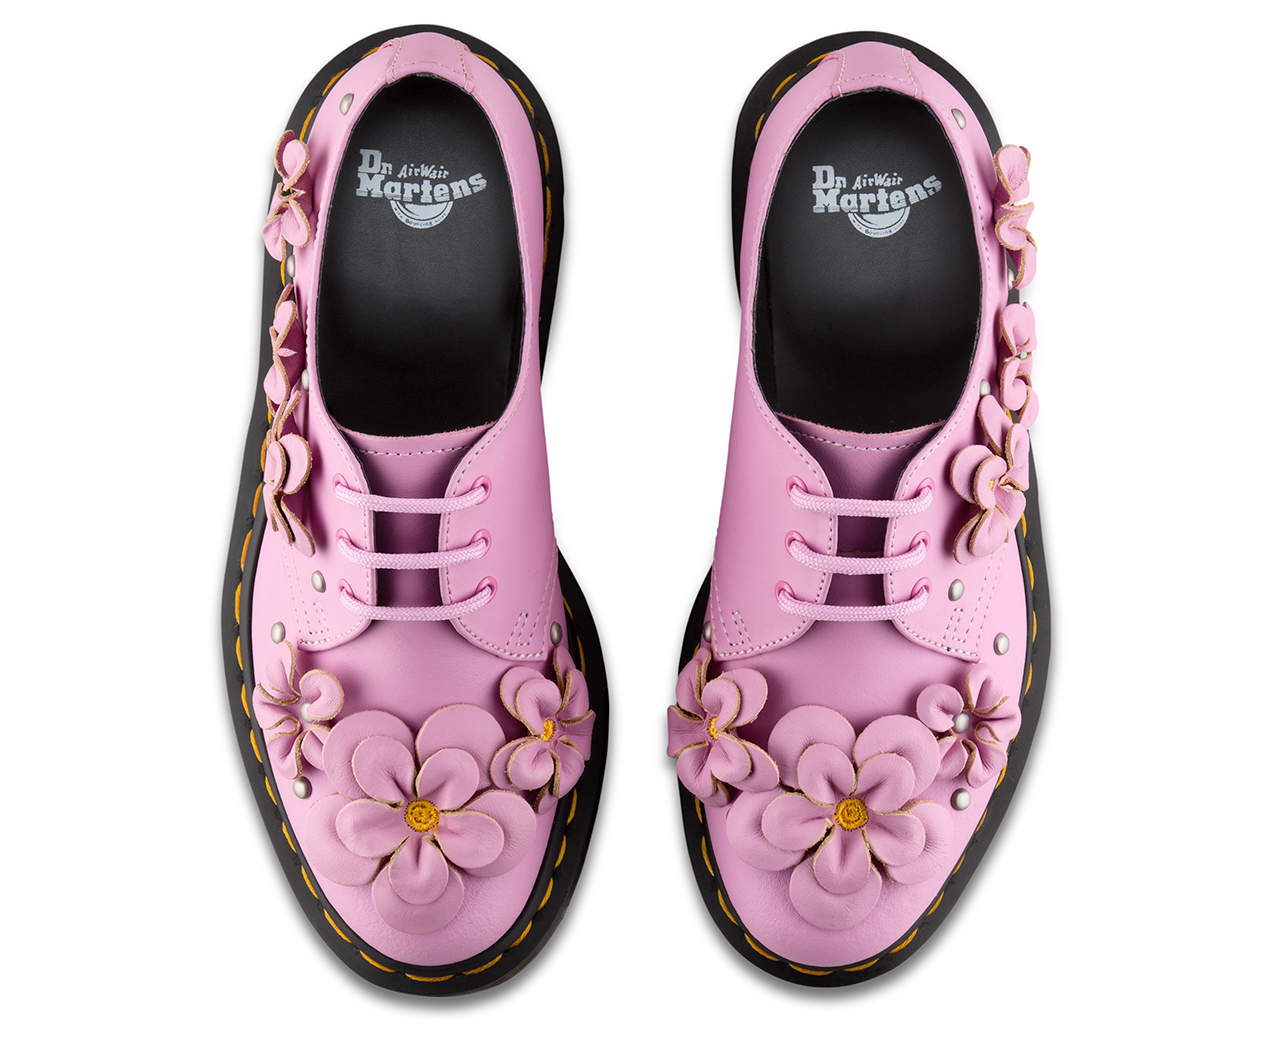 Dr. Martens 1461 Flower Derbys Discount Shopping Online Cheap Best Really For Sale Top Quality Online Cheap Sale Amazing Price mhujW